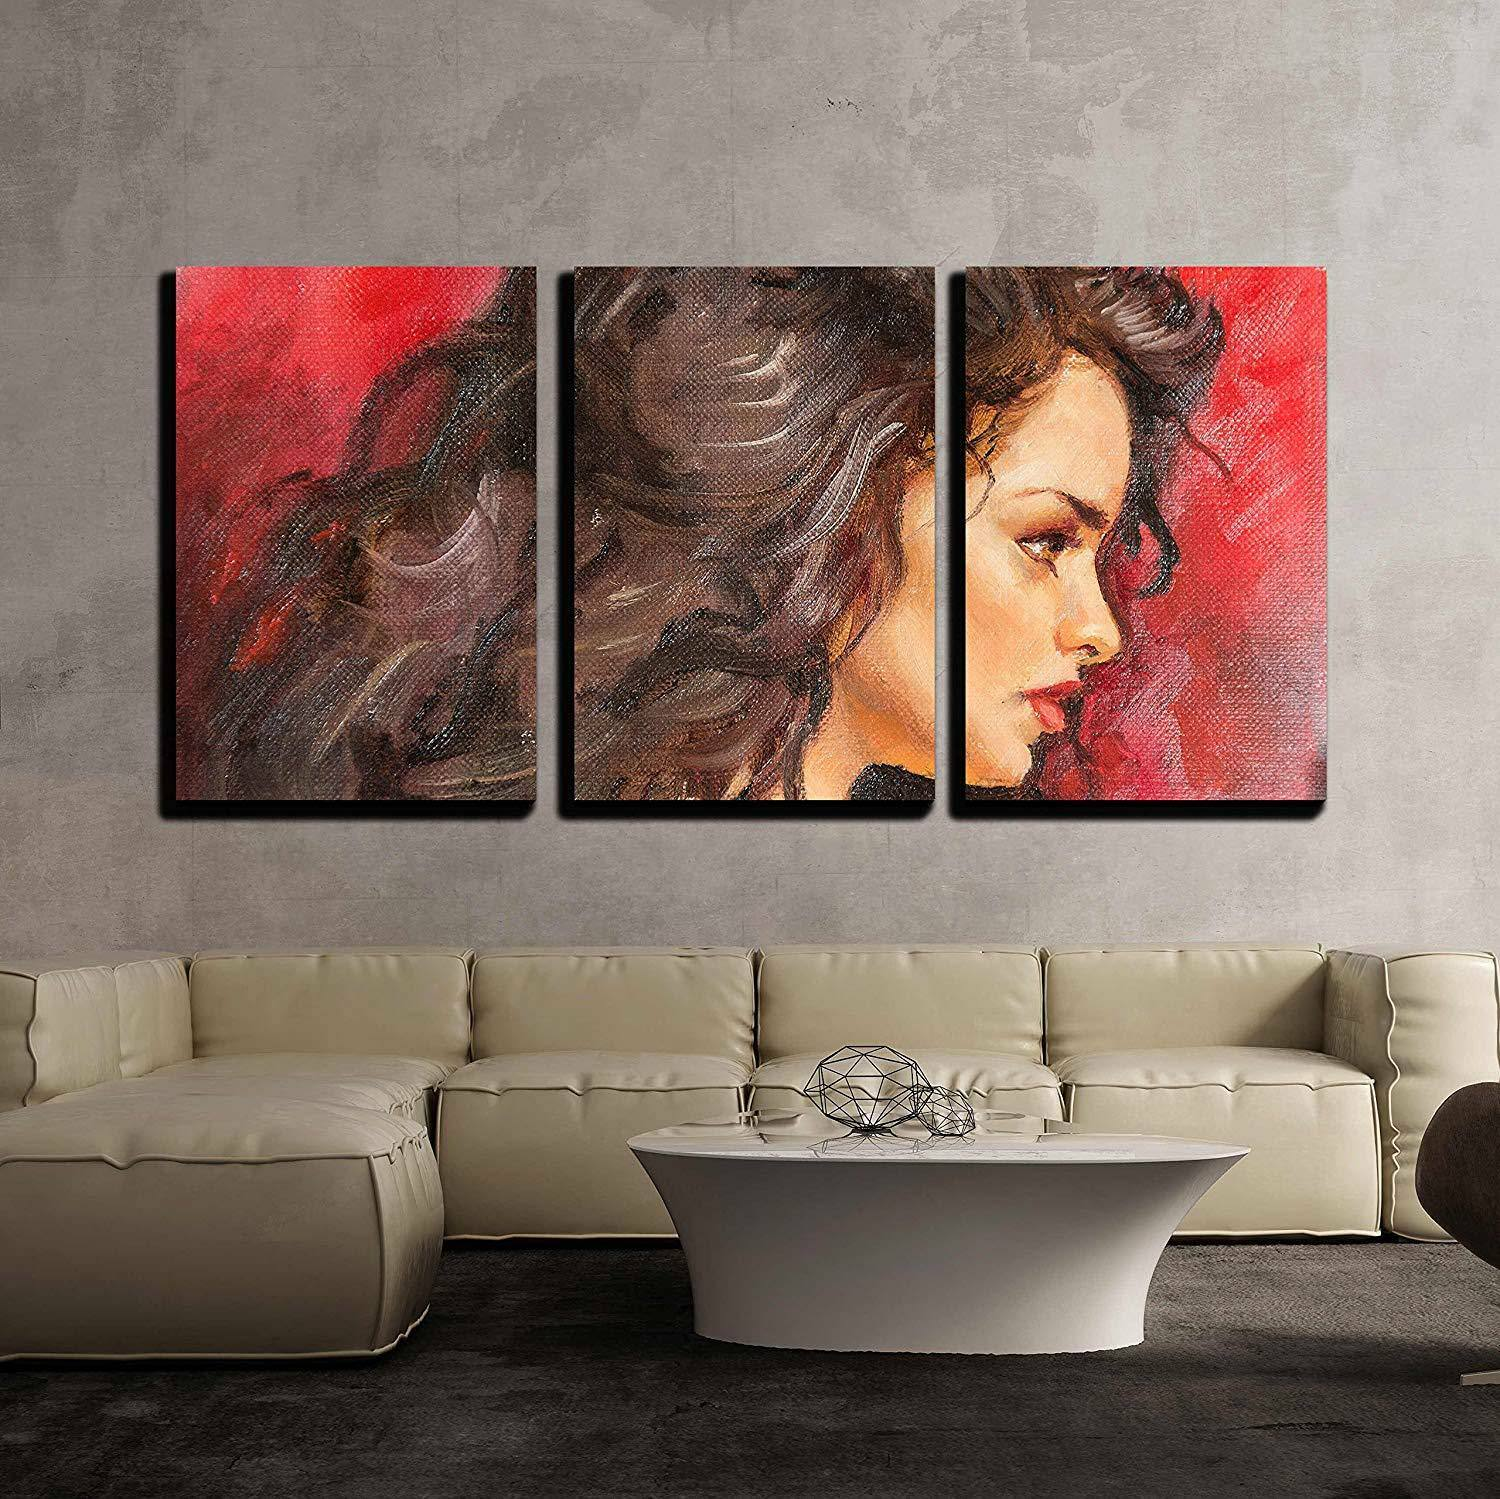 Wall26 - Oil Painting of a Young Woman - CVS - 16 x24 x3 Panels